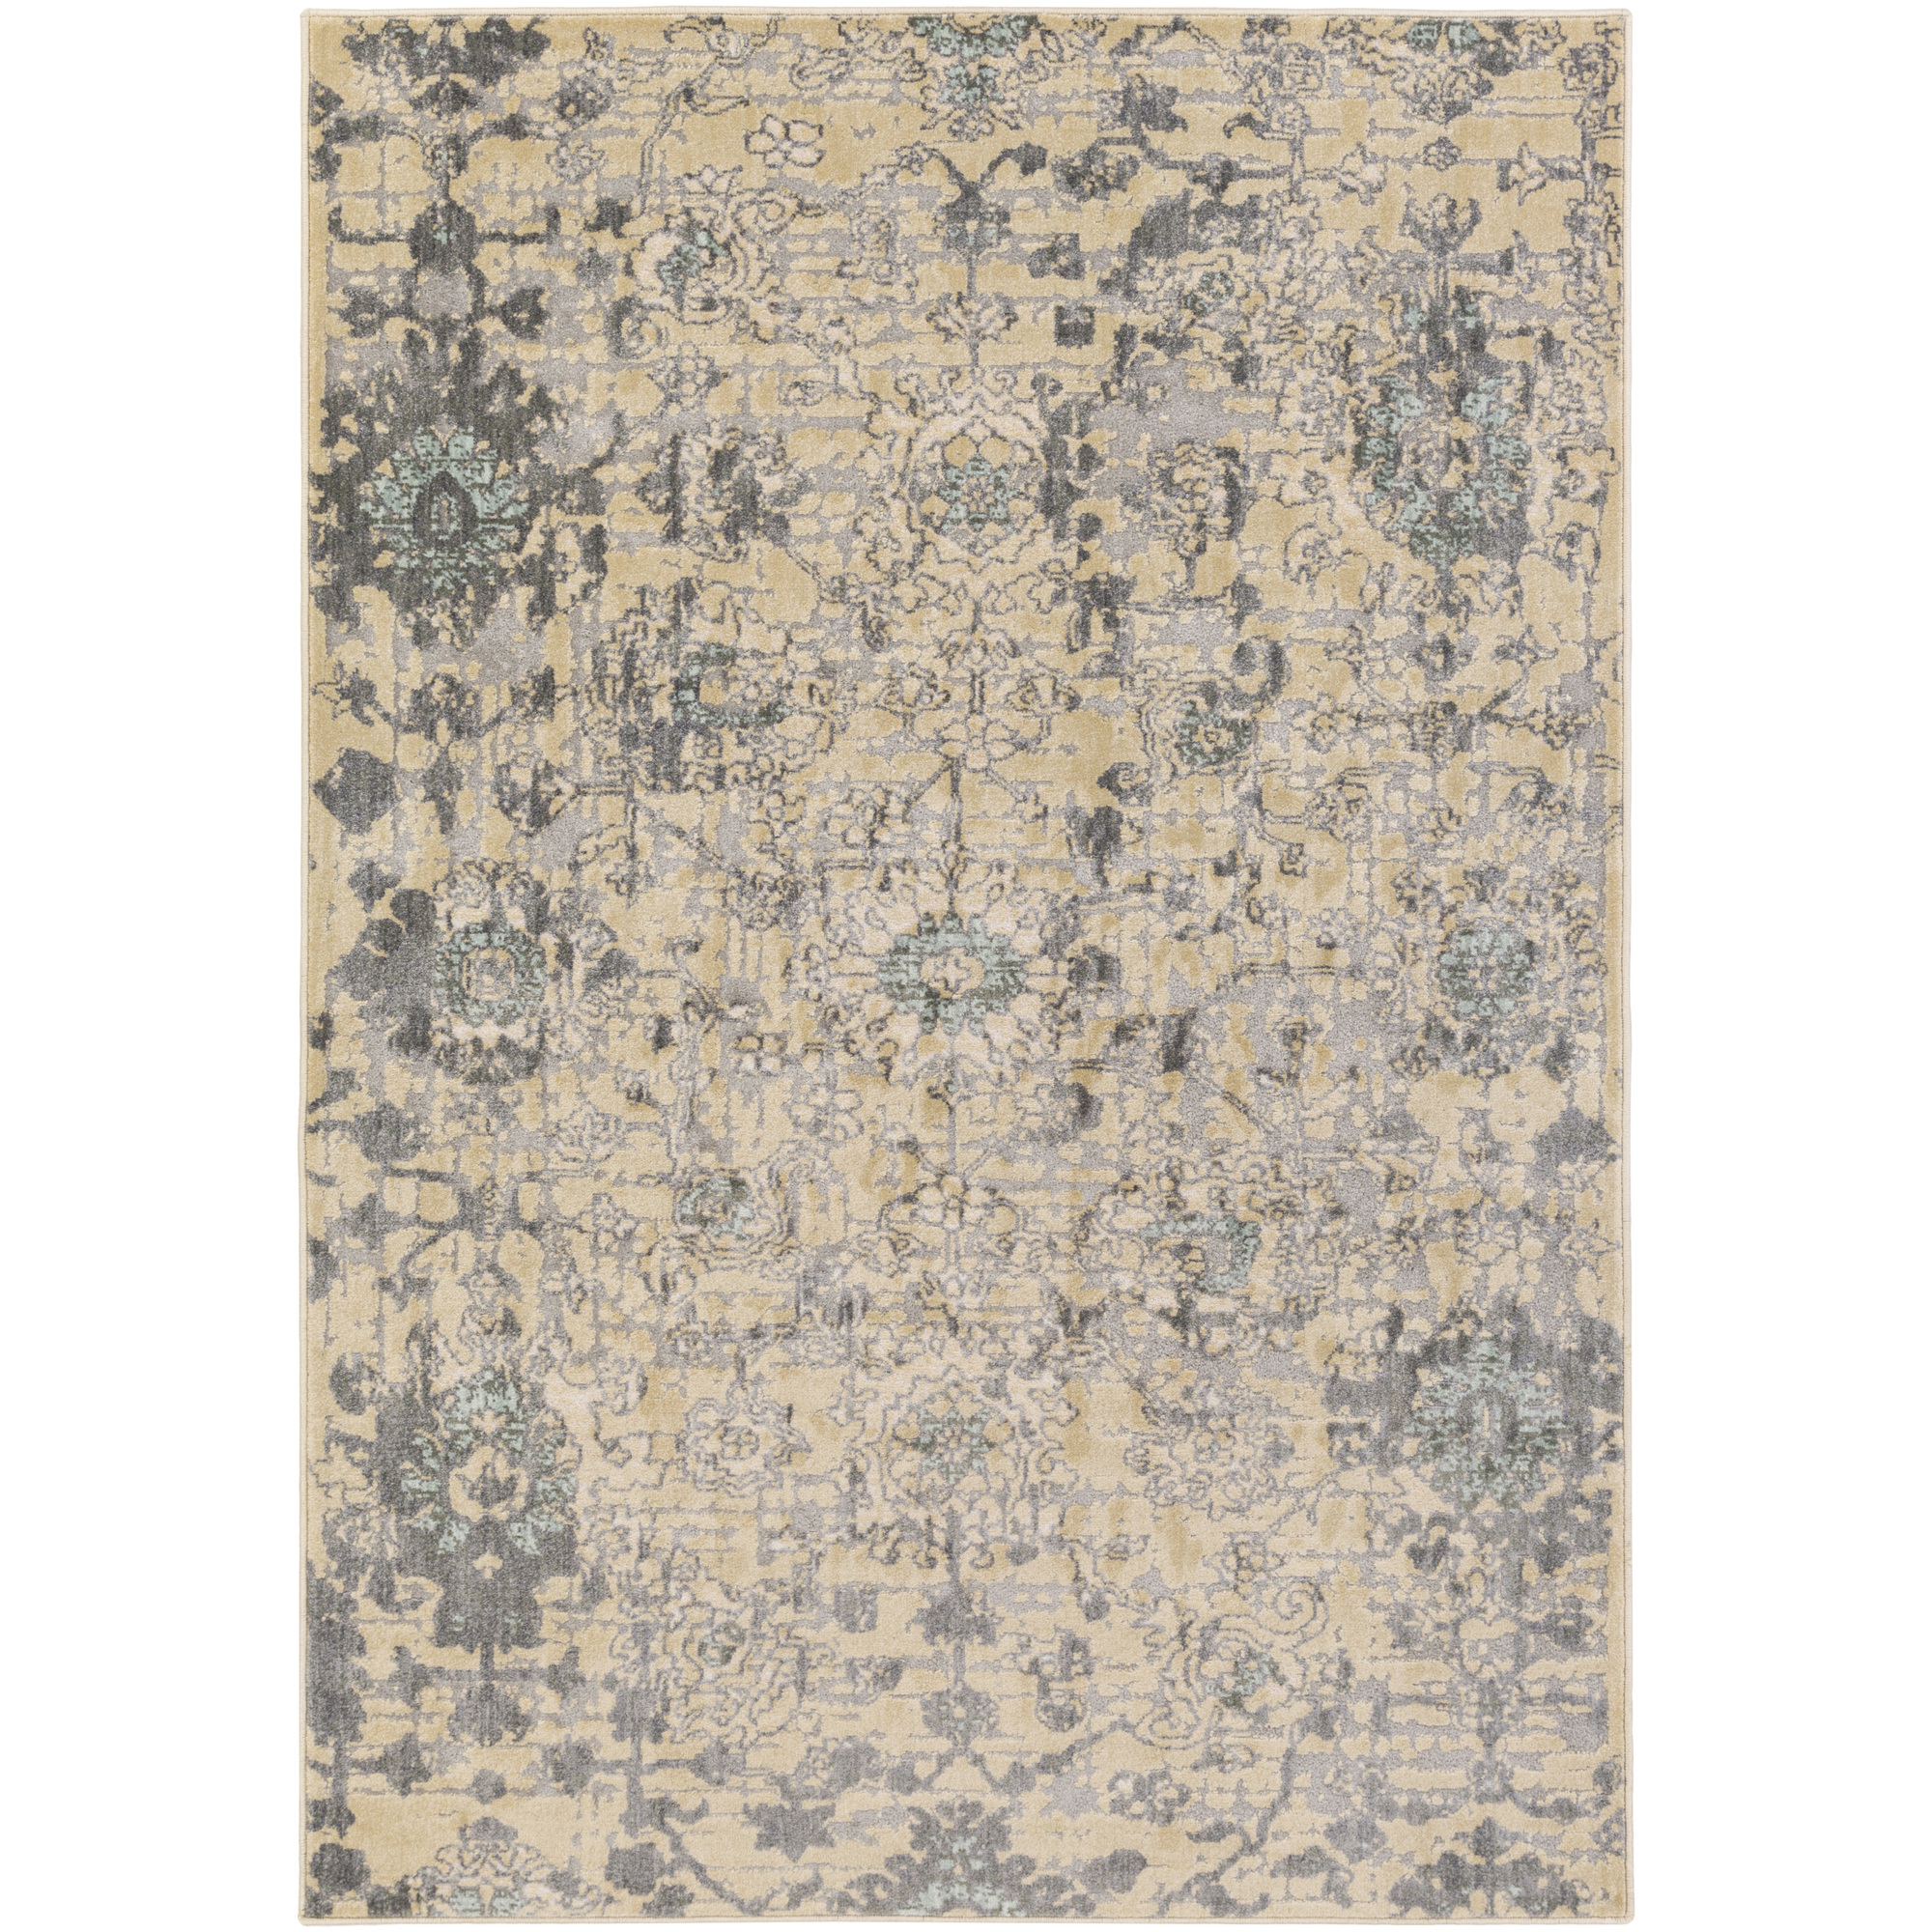 "Art of Knot Narvisa 8'10"" x 12'9"" Rectangular Area Rug"